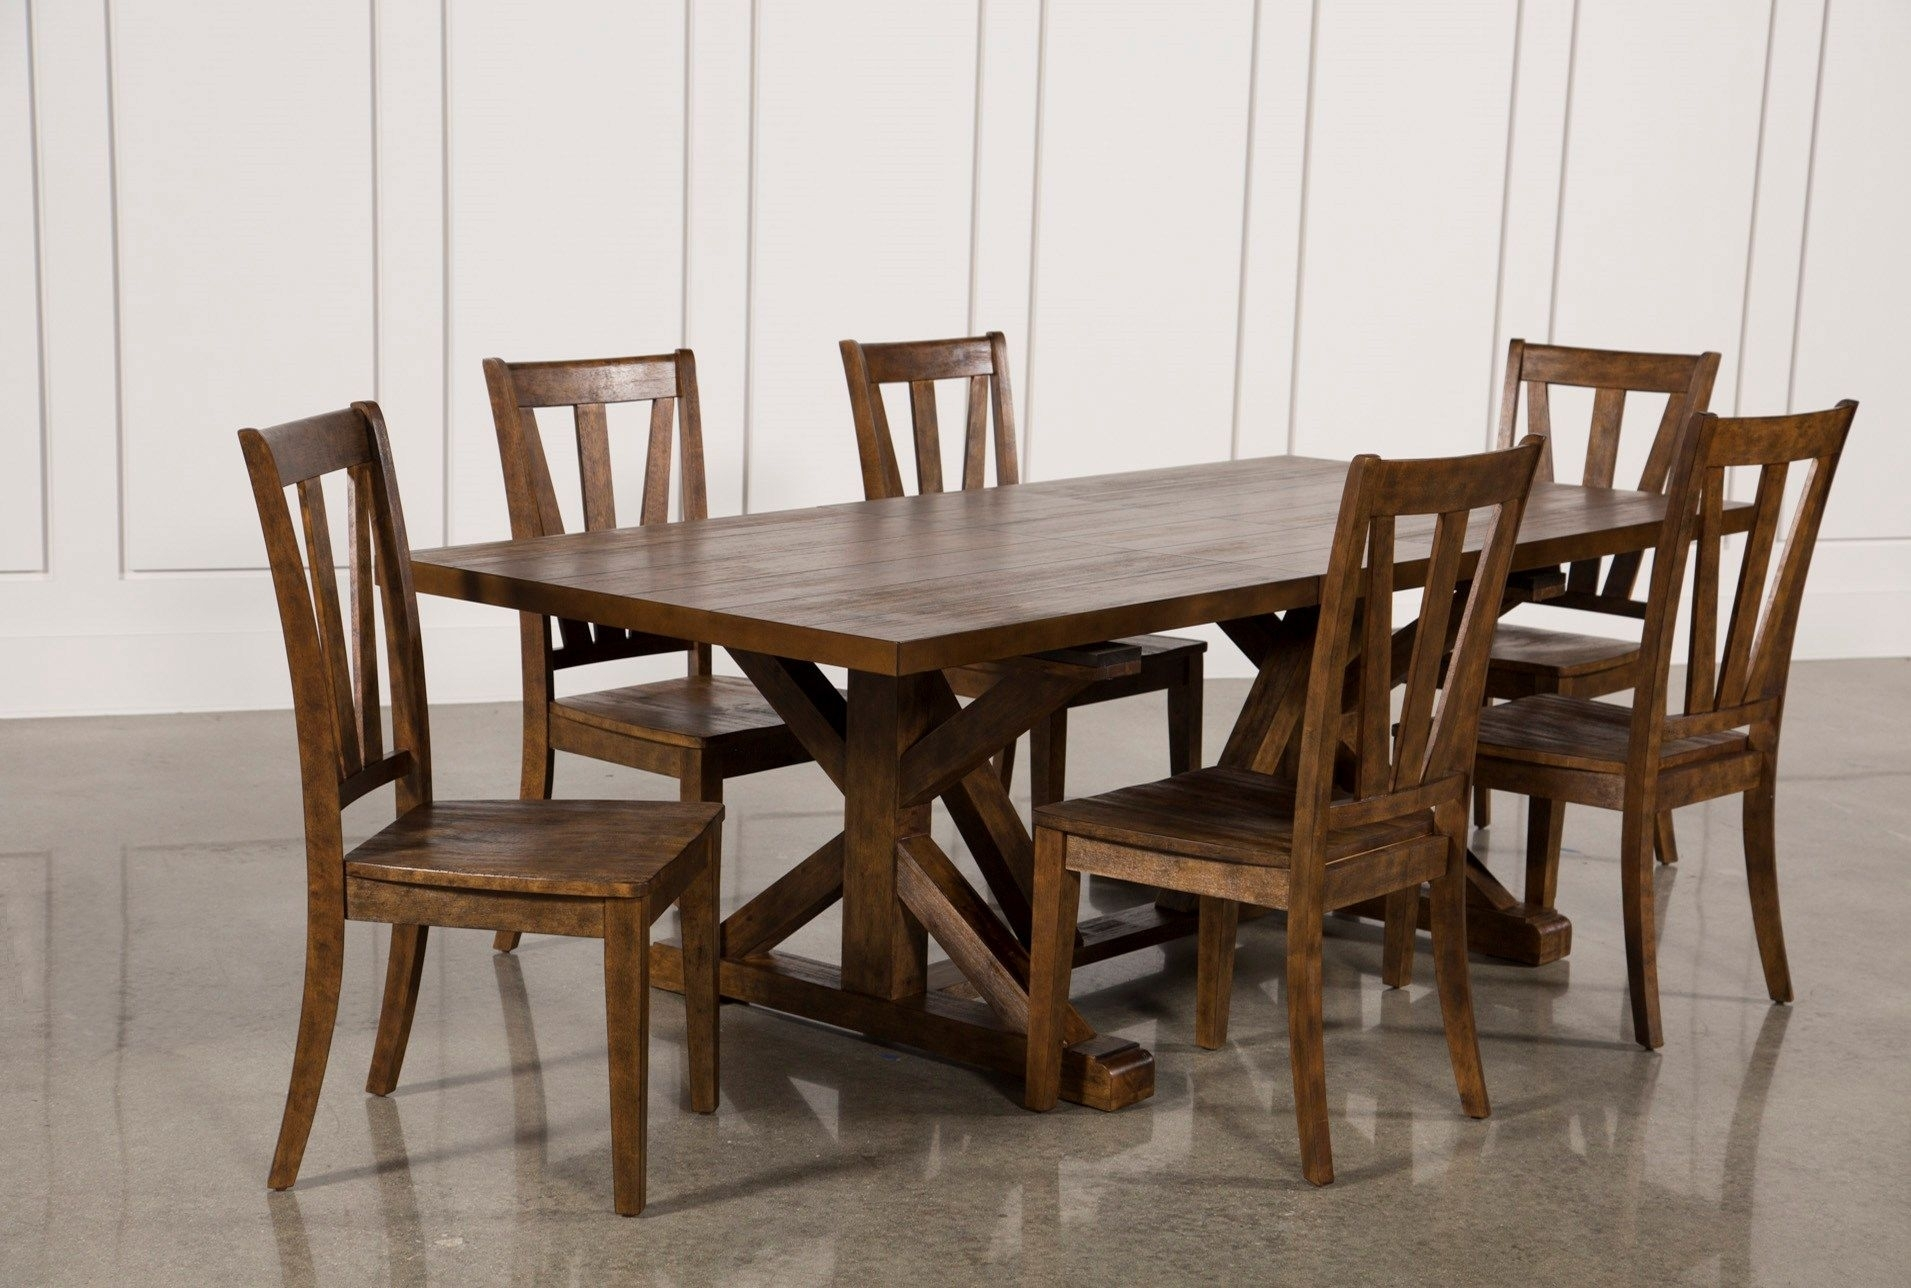 Chandler 7 Piece Extension Dining Set W/wood Side Chairs | Home Inside Most Recently Released Chandler 7 Piece Extension Dining Sets With Wood Side Chairs (Photo 4 of 20)